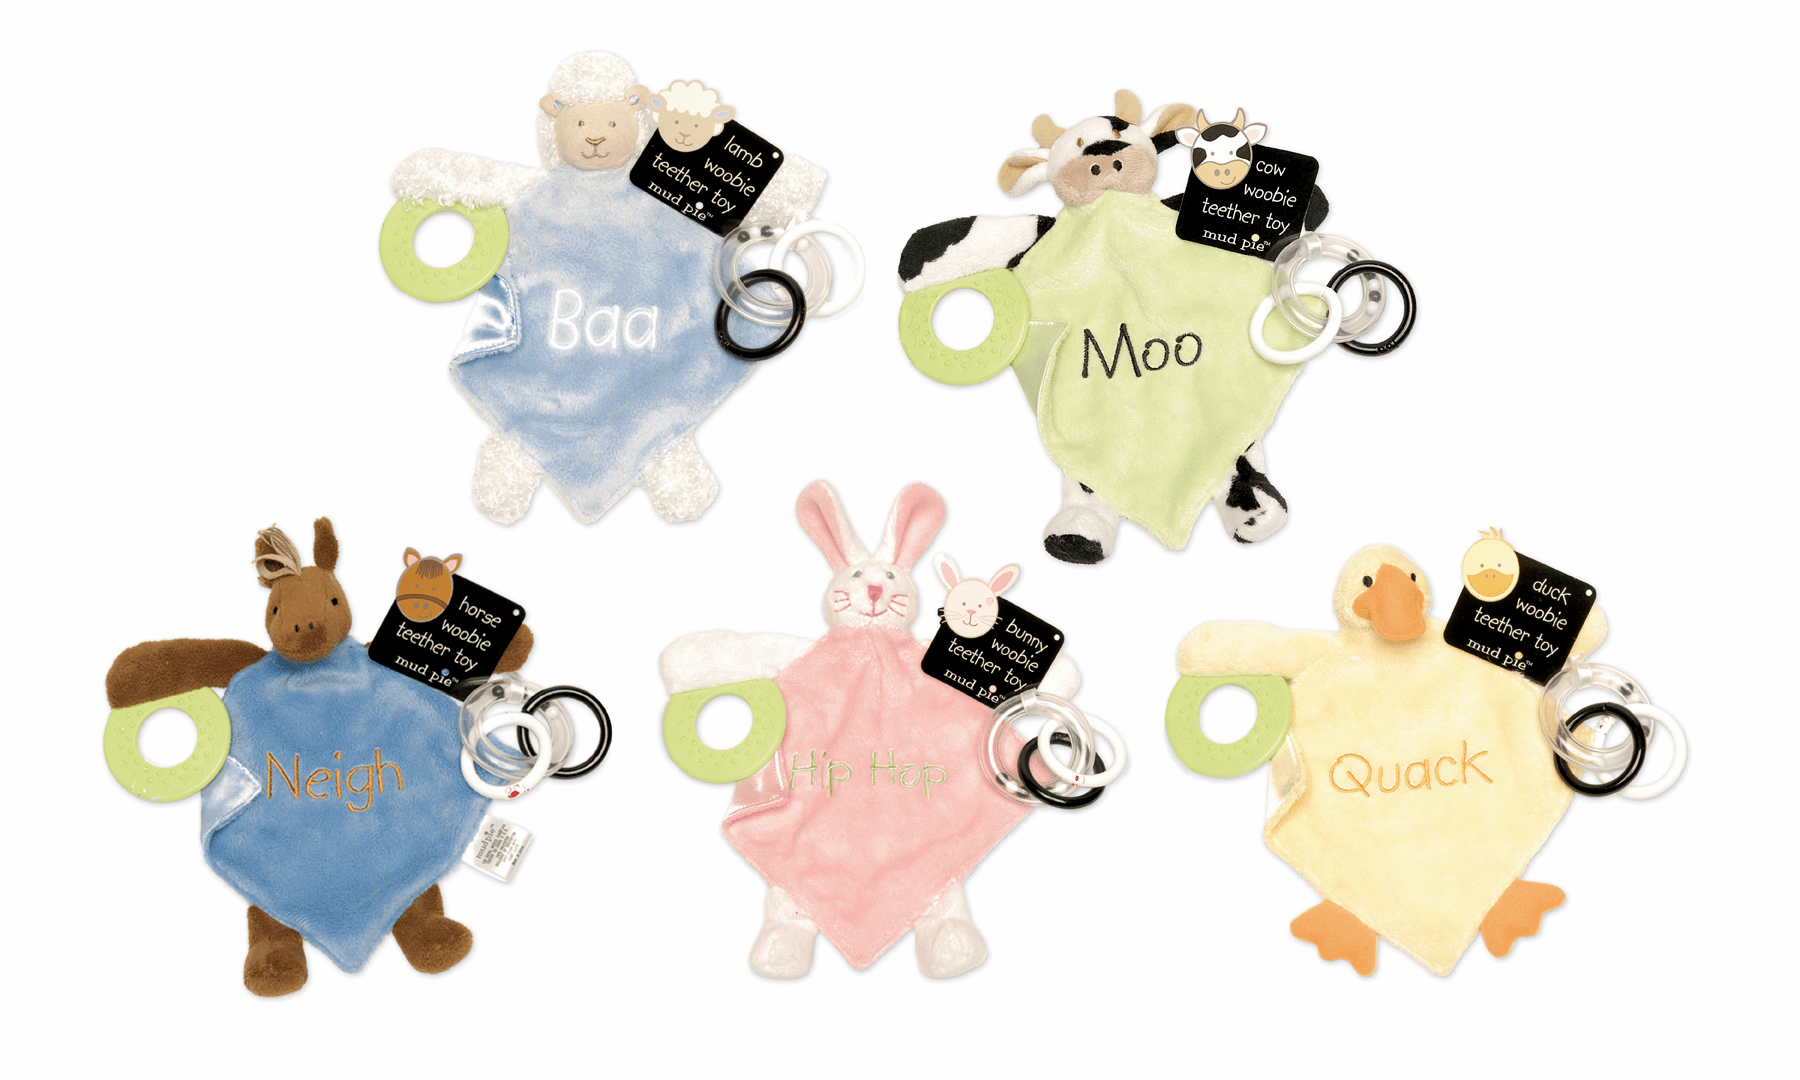 EIEIO Plush Teethers by Mud Pie